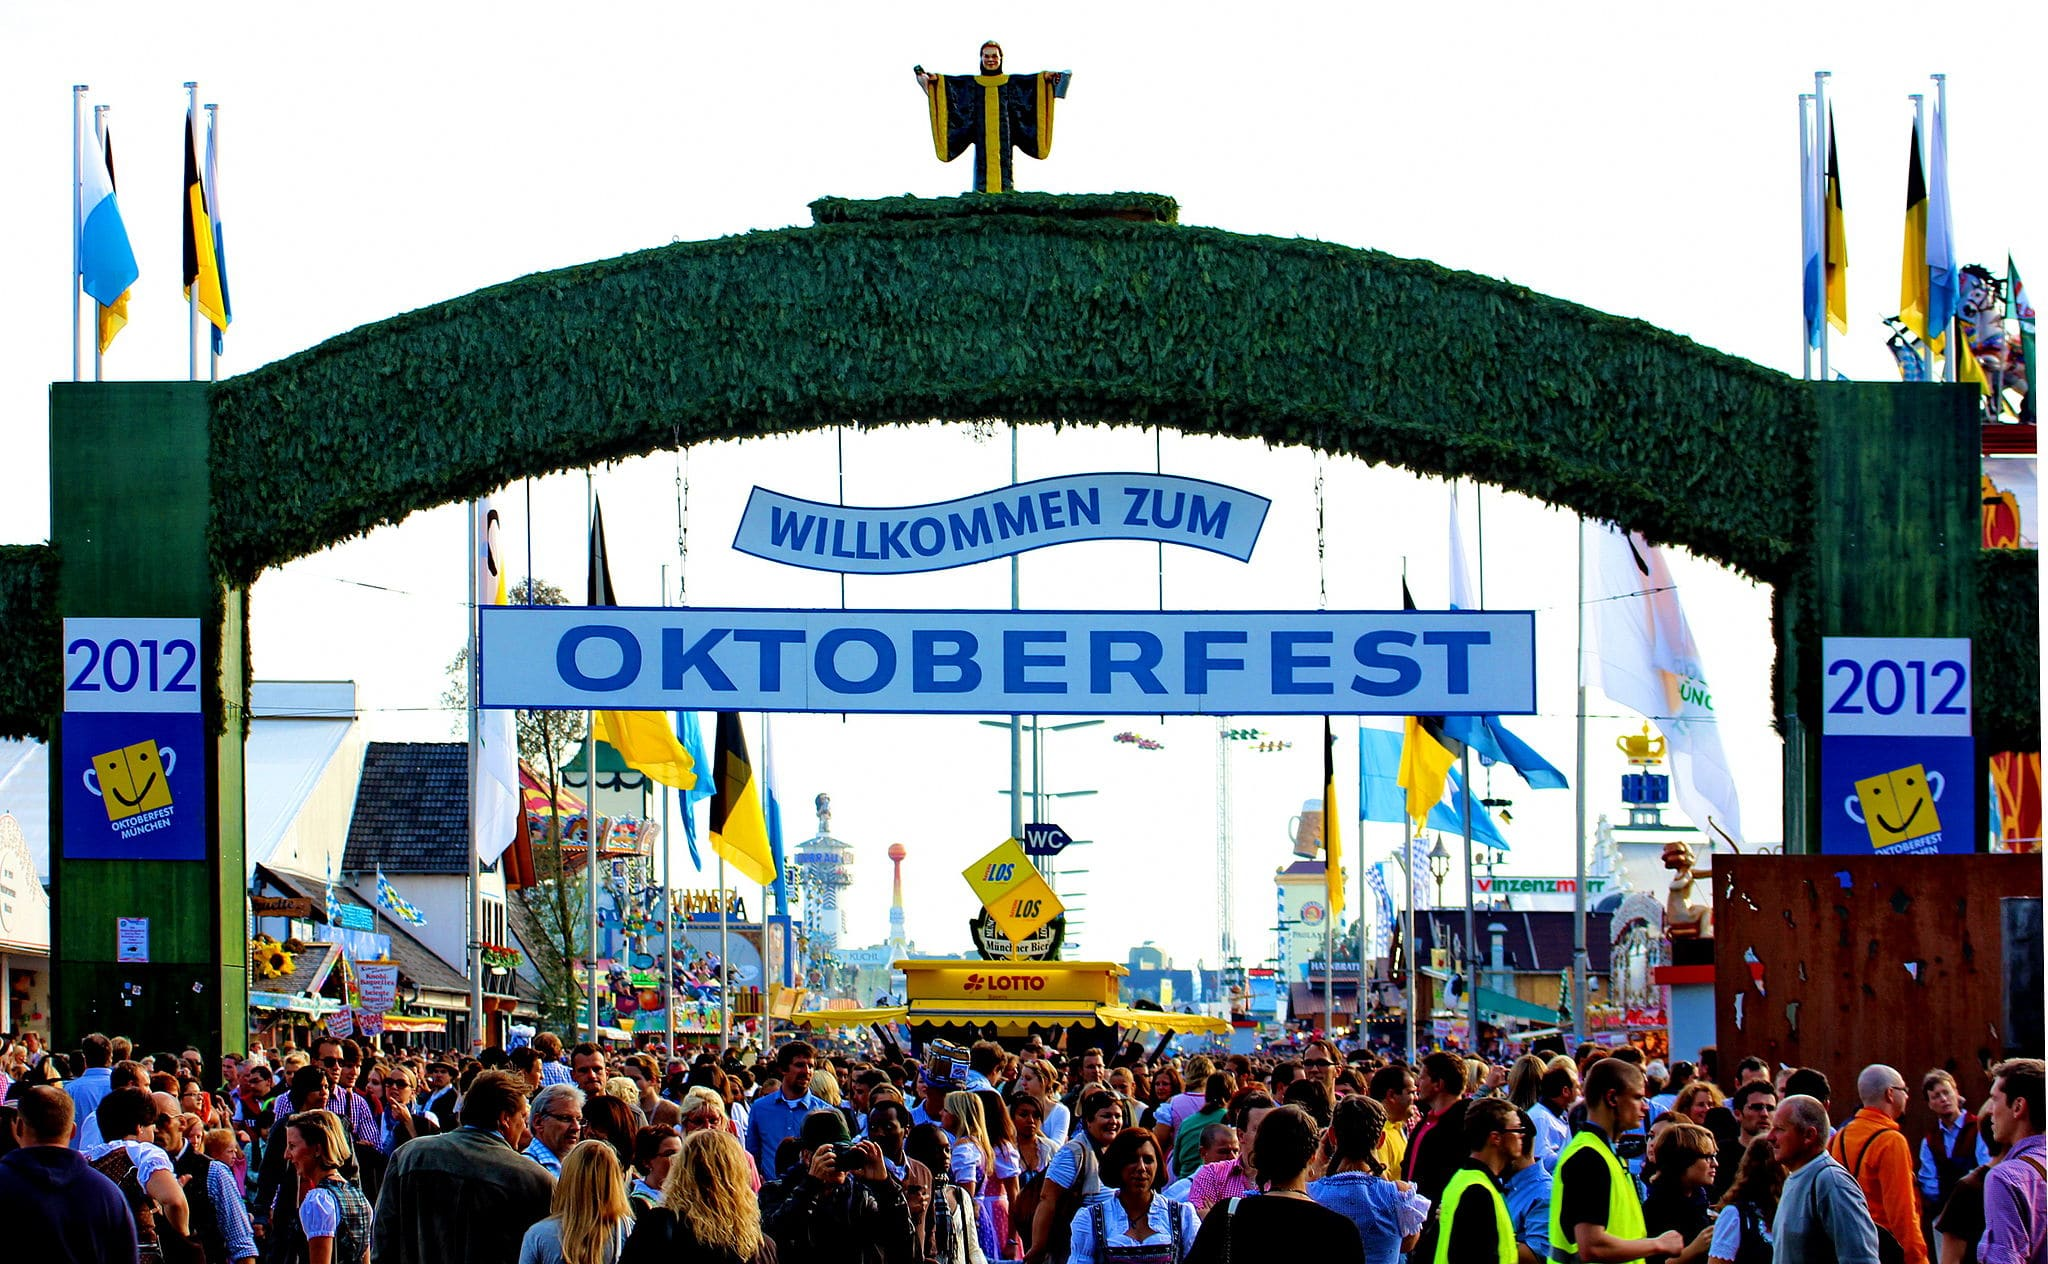 Oktoberfest - 8 Festivals From Around The World To Add To Your Bucket List